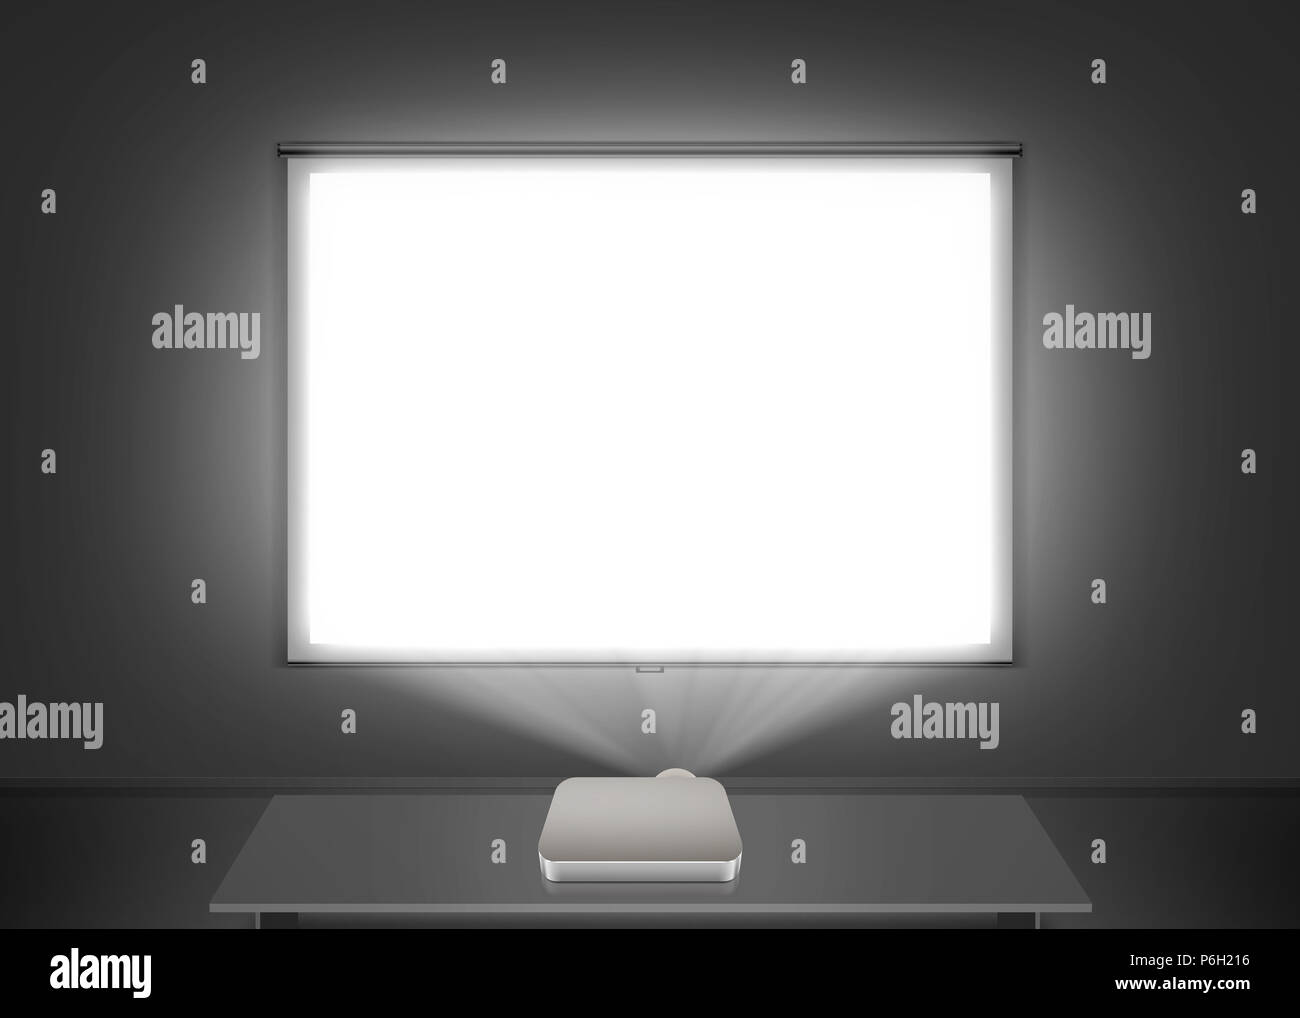 Blank projector screen mockup on the wall. Projection light in darkness. Projector display mock up. Presentation clear monitor on wall. Slide show front design. Slideshow frame. Cinema screen wall. - Stock Image